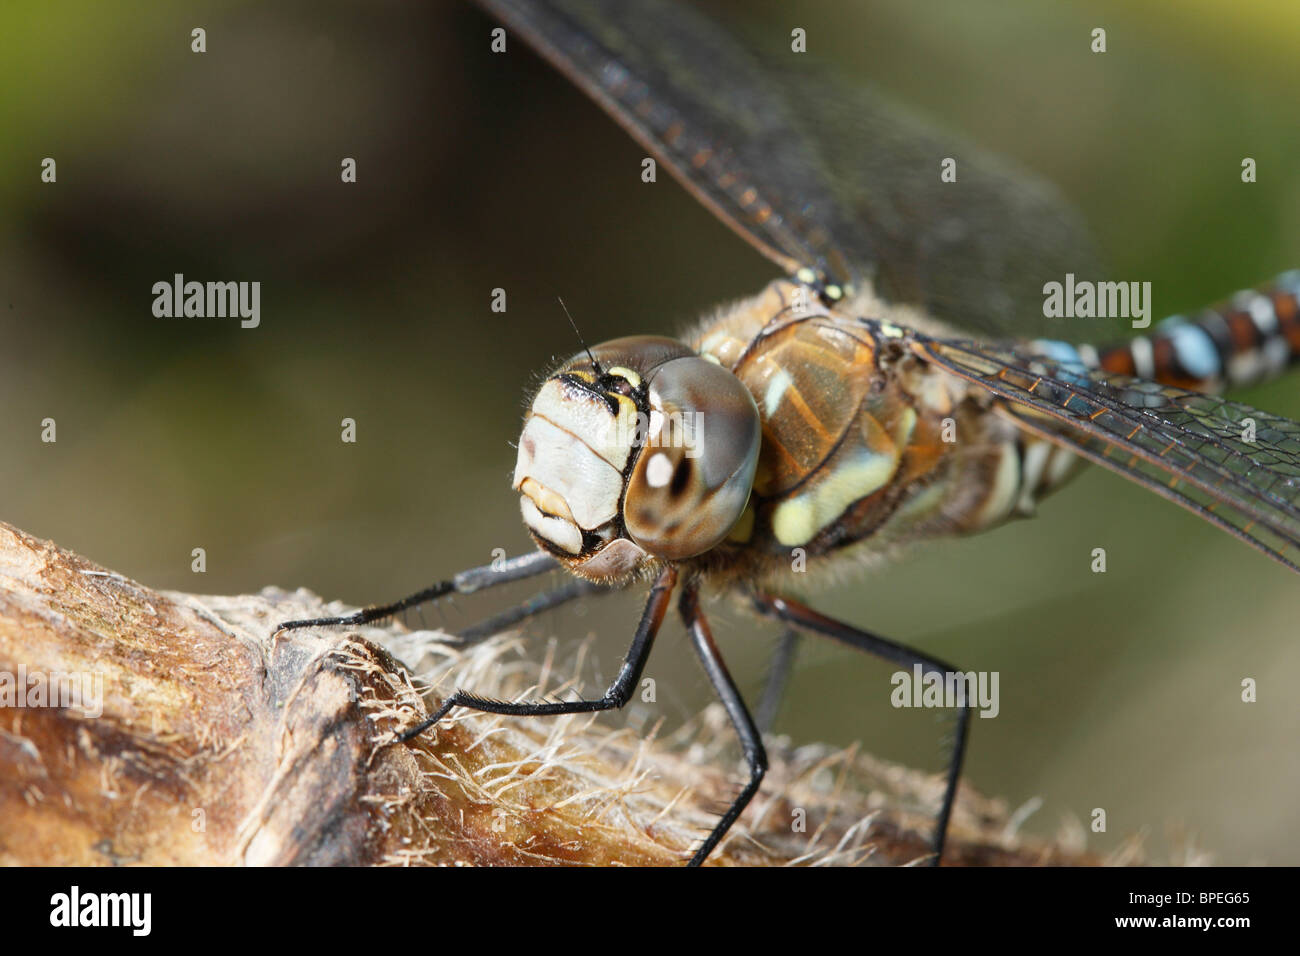 Close up images of a Migrant Hawker Dragonfly - Stock Image